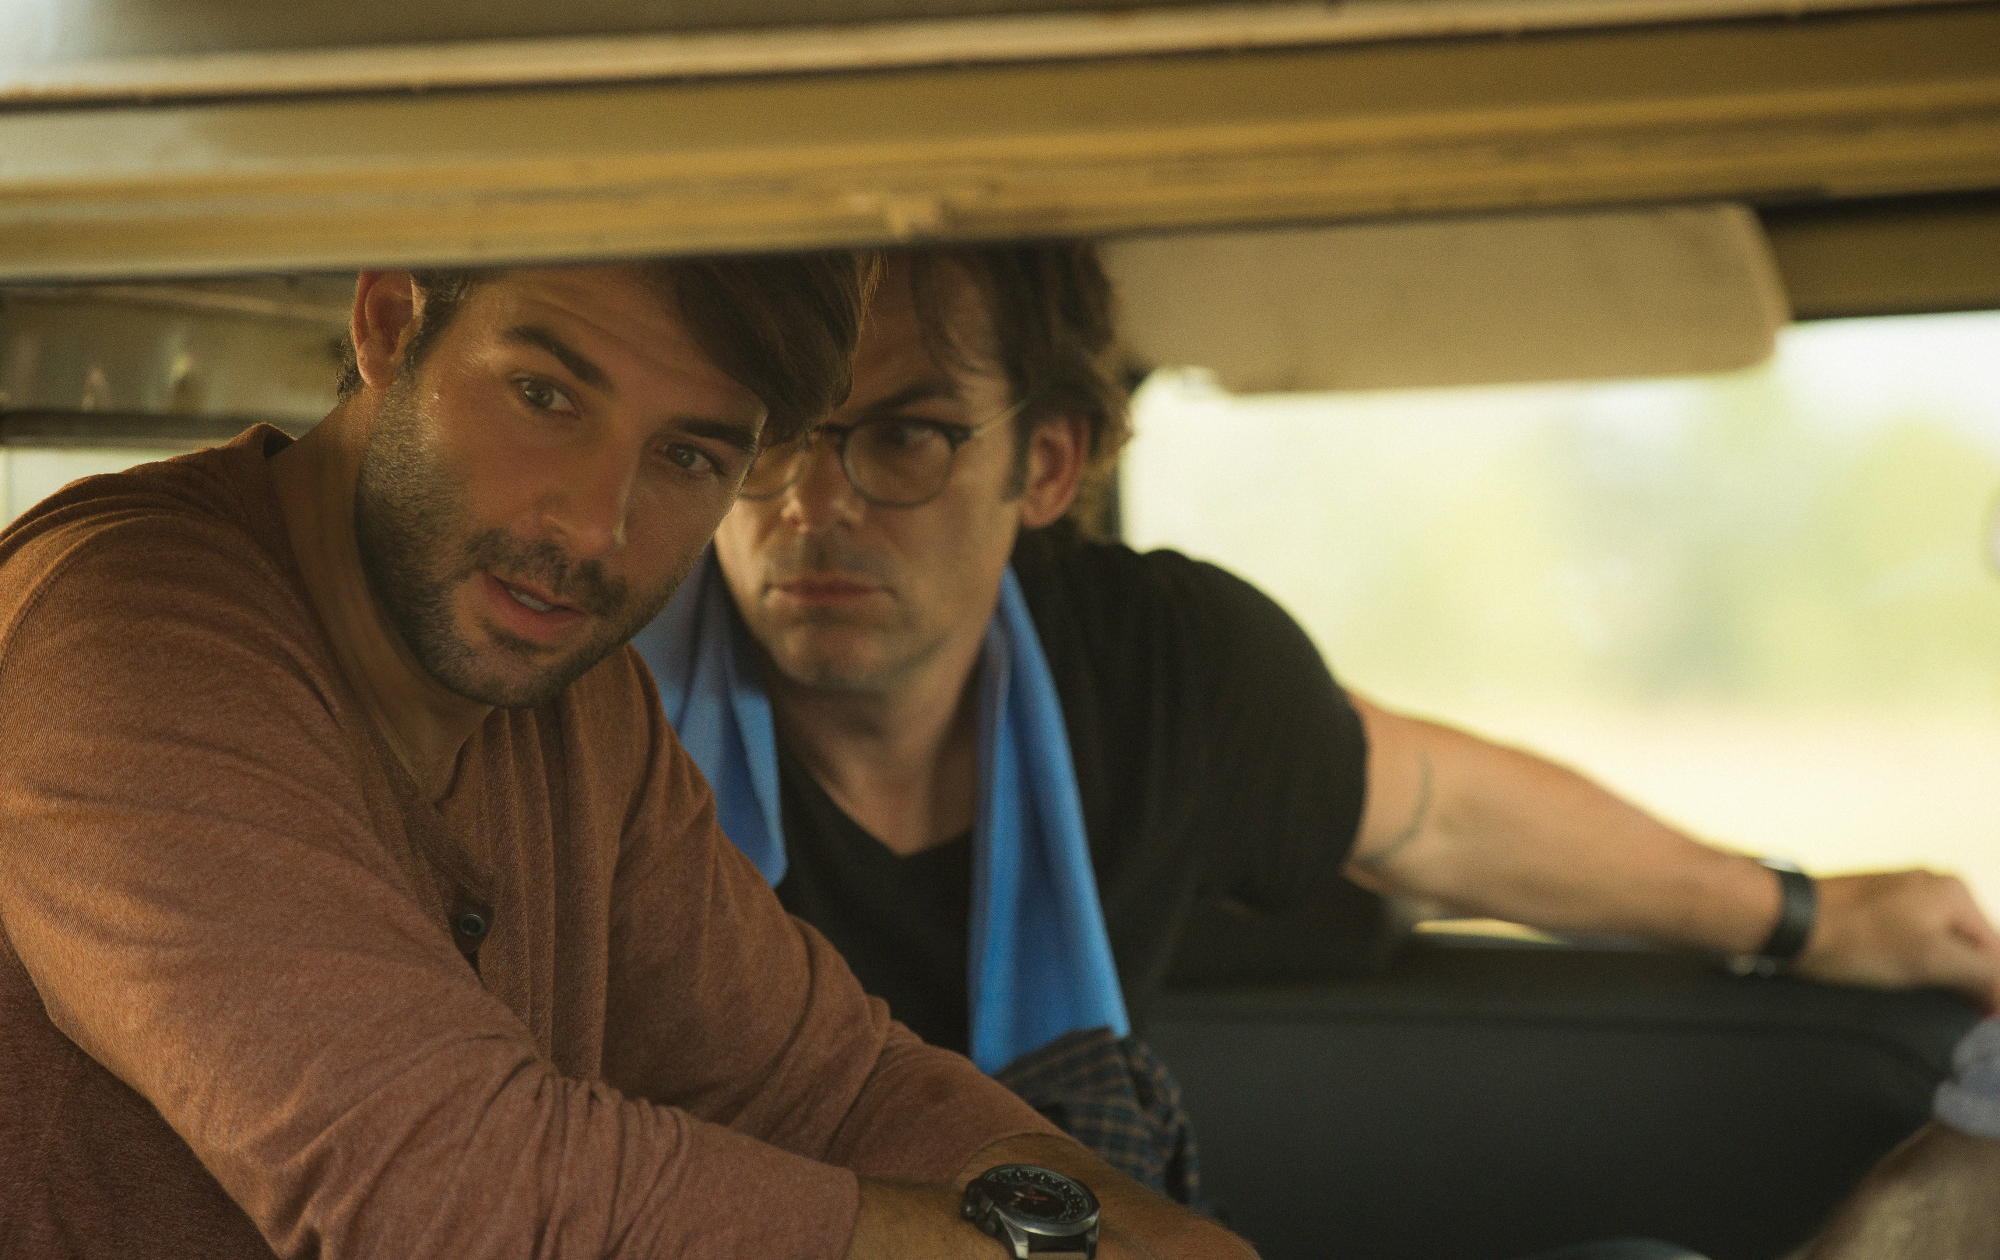 James Wolk as Jackson Oz and Billy Burke as Mitch Morgan.